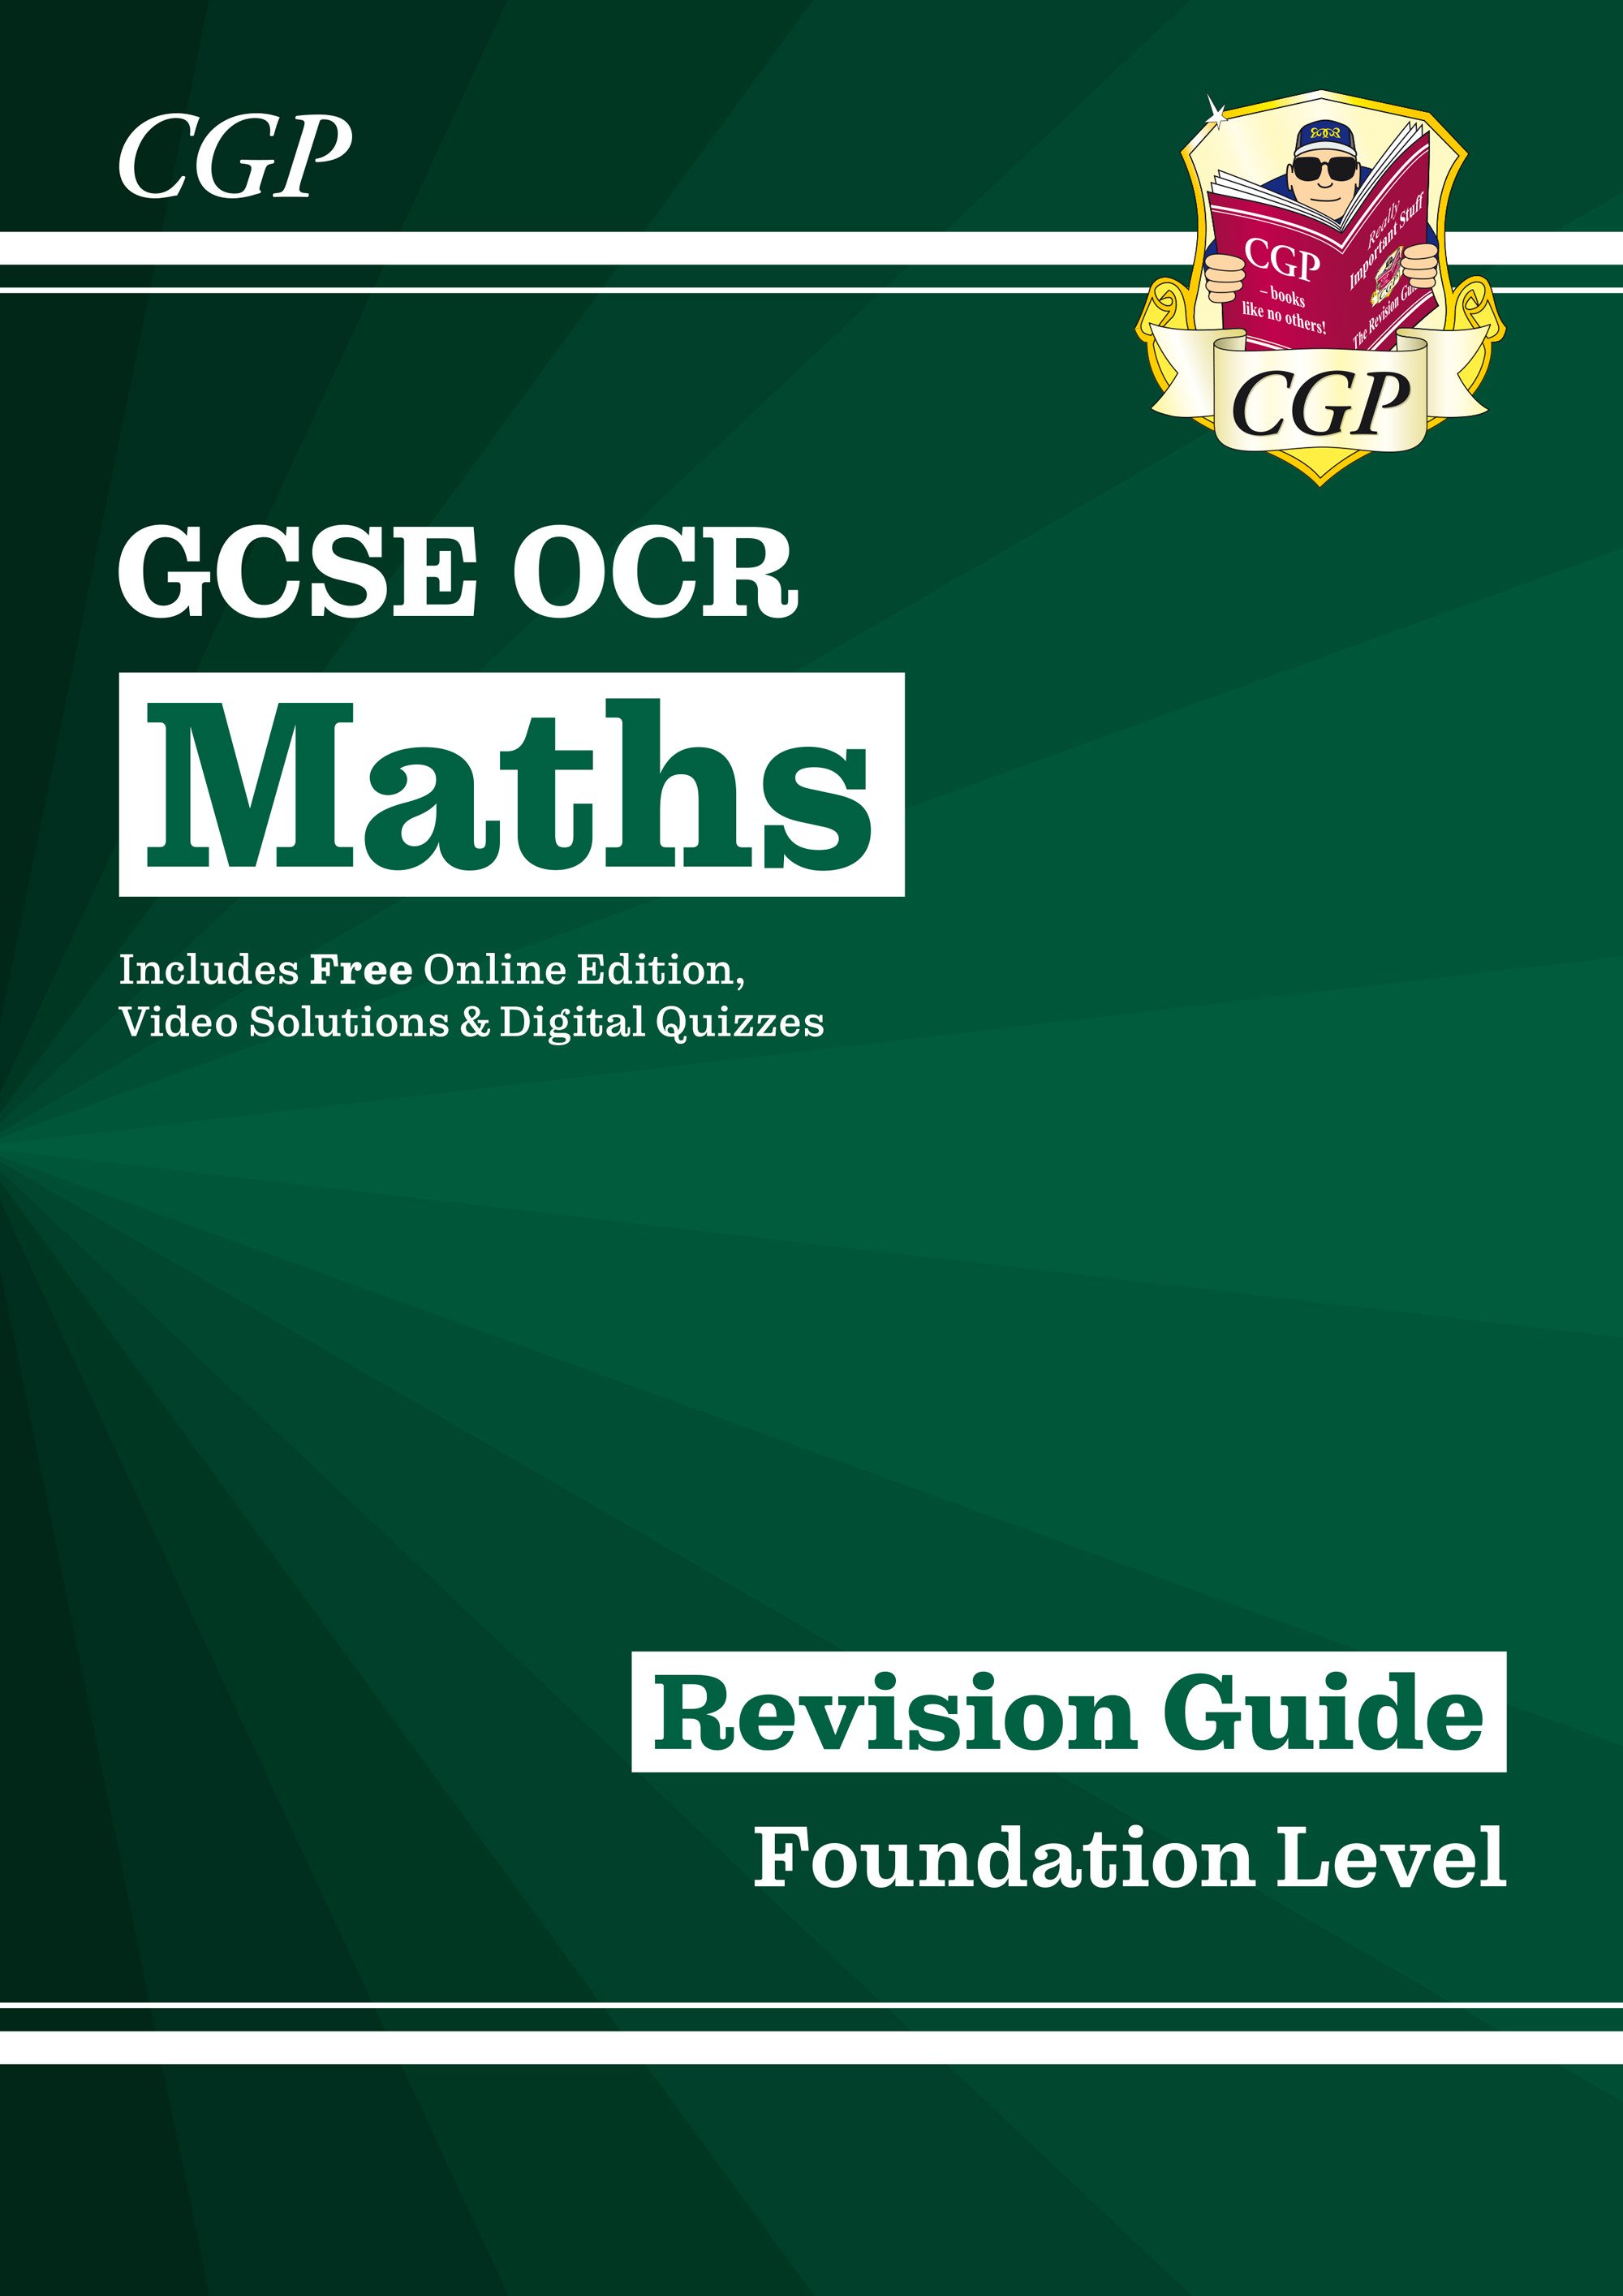 MCFR47 - New 2021 GCSE Maths OCR Revision Guide: Foundation inc Online Edition, Videos & Quizzes